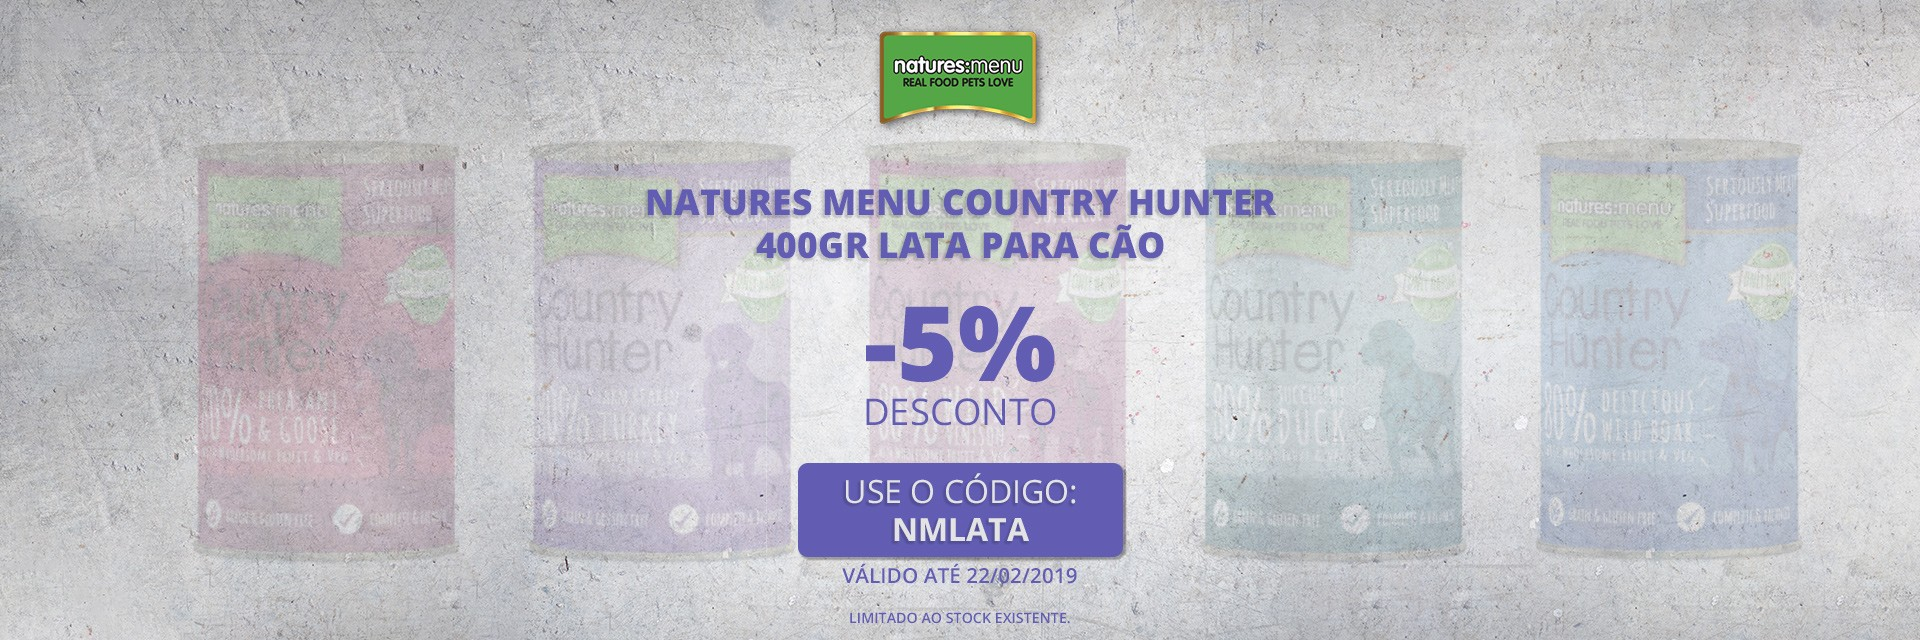 NM COUNTRY HUNTER